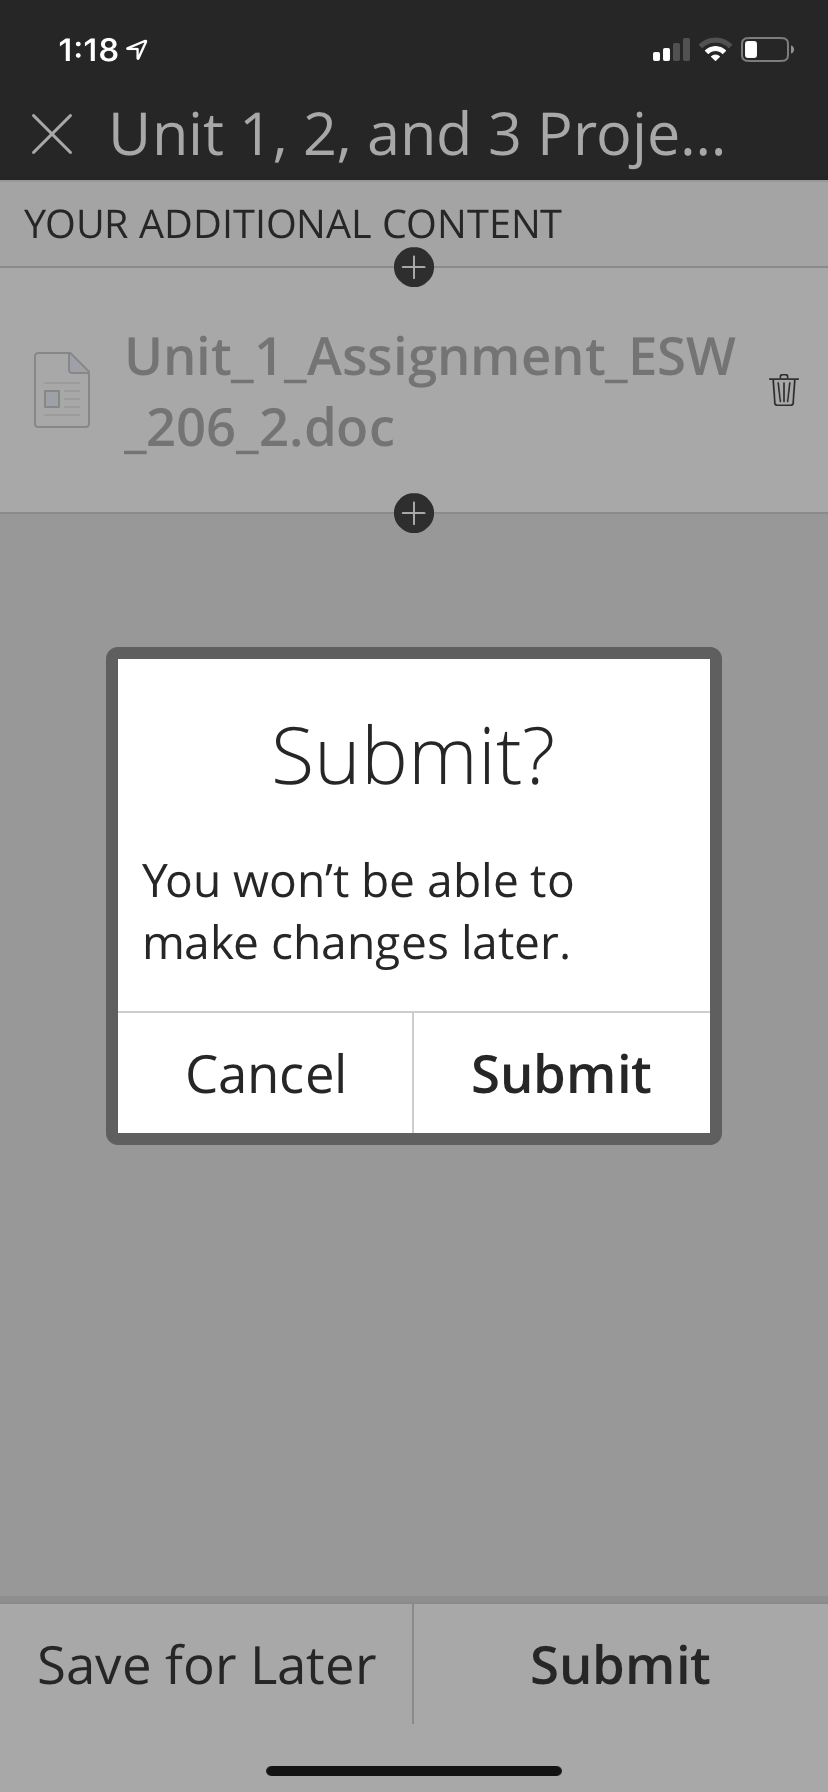 This screen allows you to Cancel or Submit.